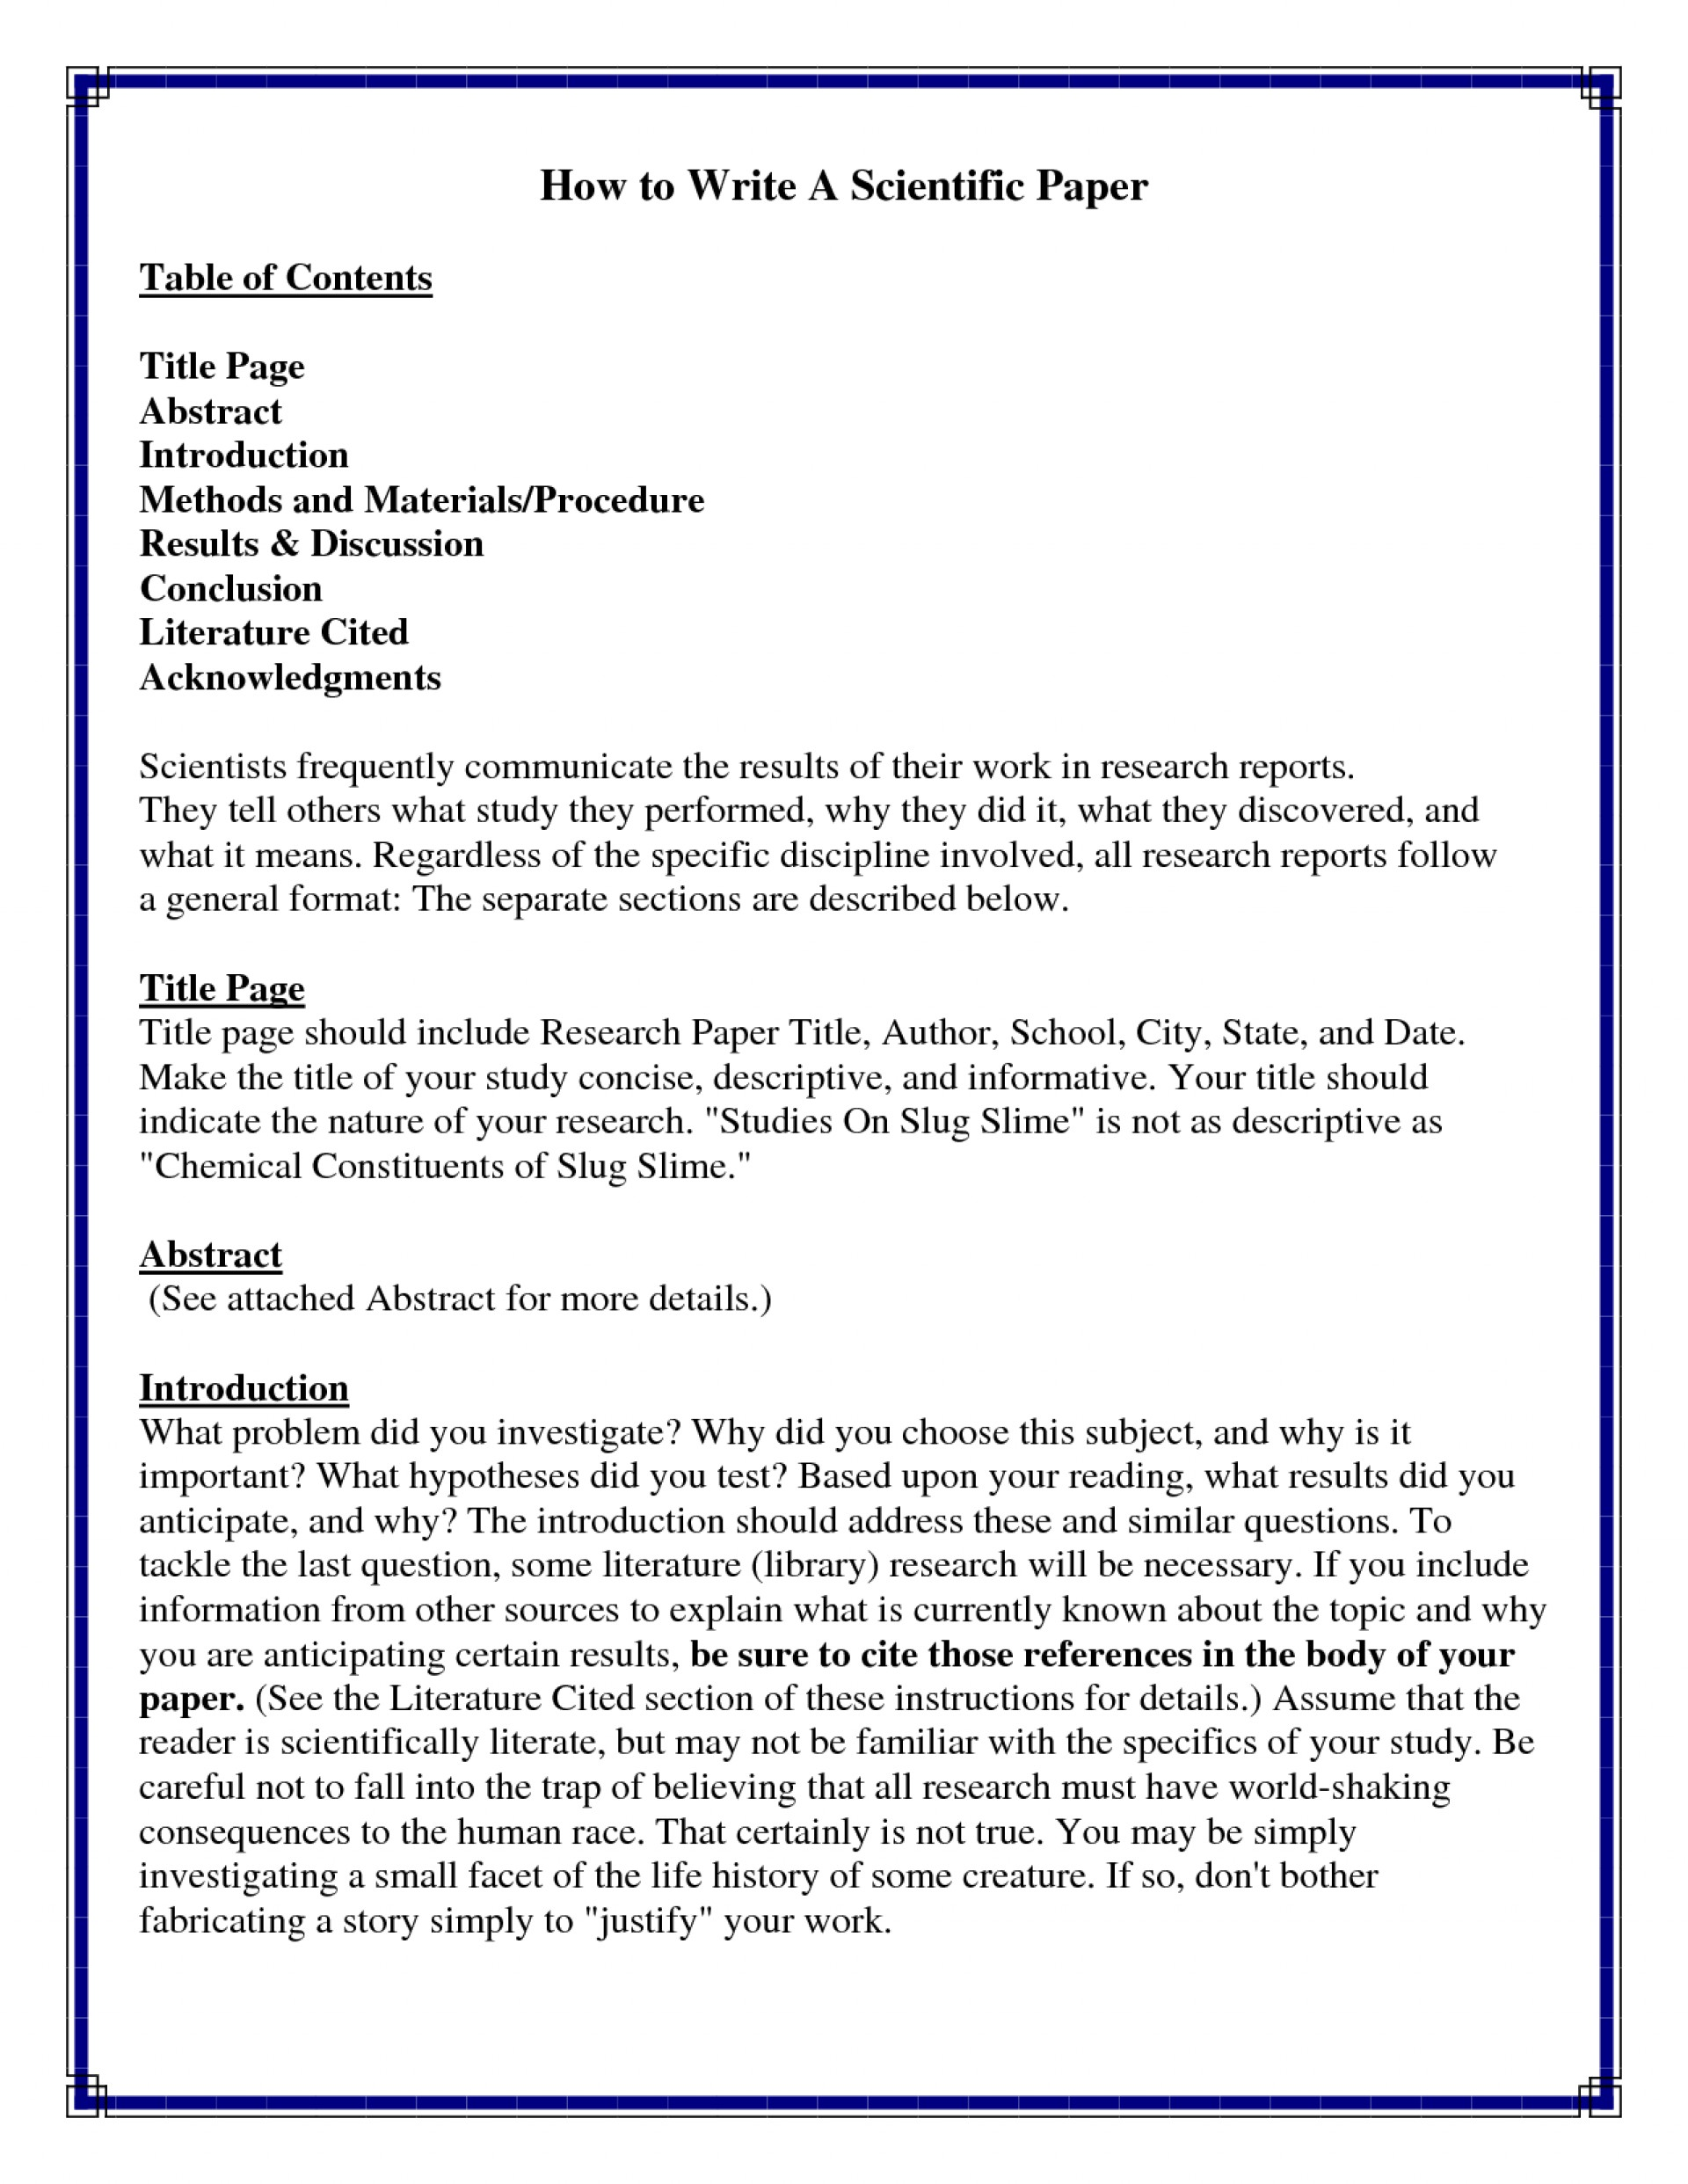 002 Essay Example How To Write Research Huidbfbtx Paper Excellent A Proposal In Apa Format Mla 1920